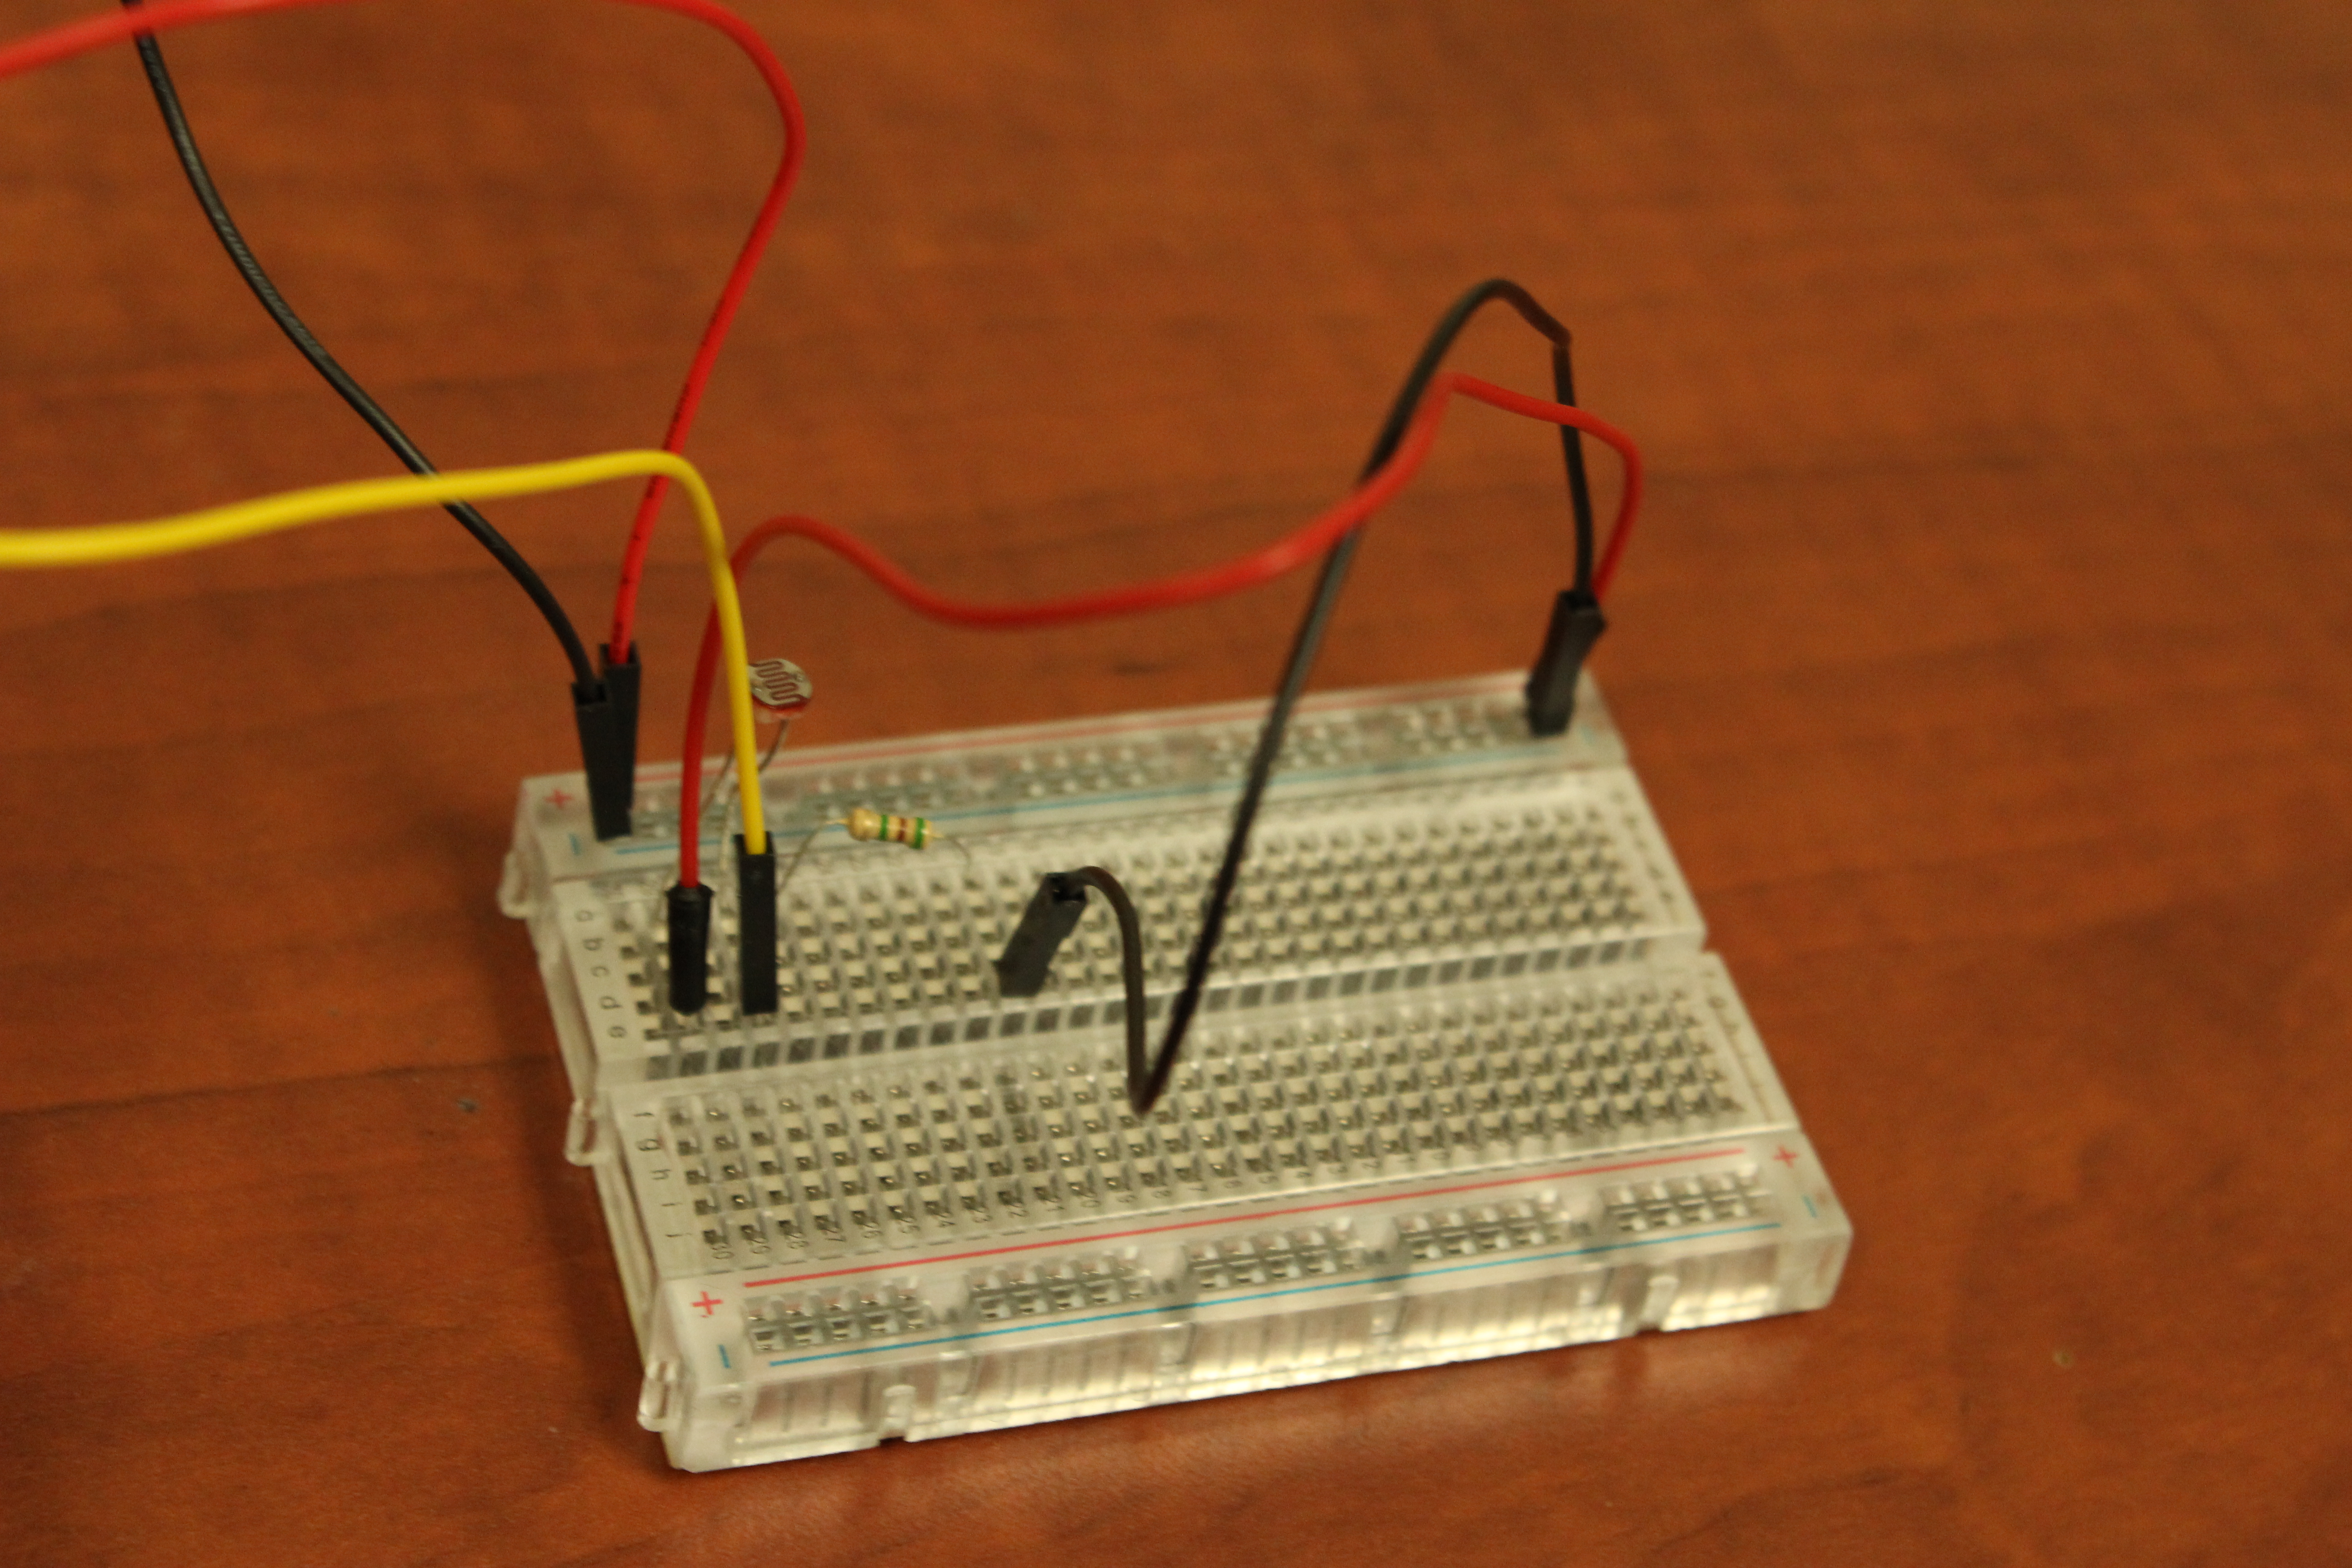 Picture of Connecting the Light Sensor to the Breadboard